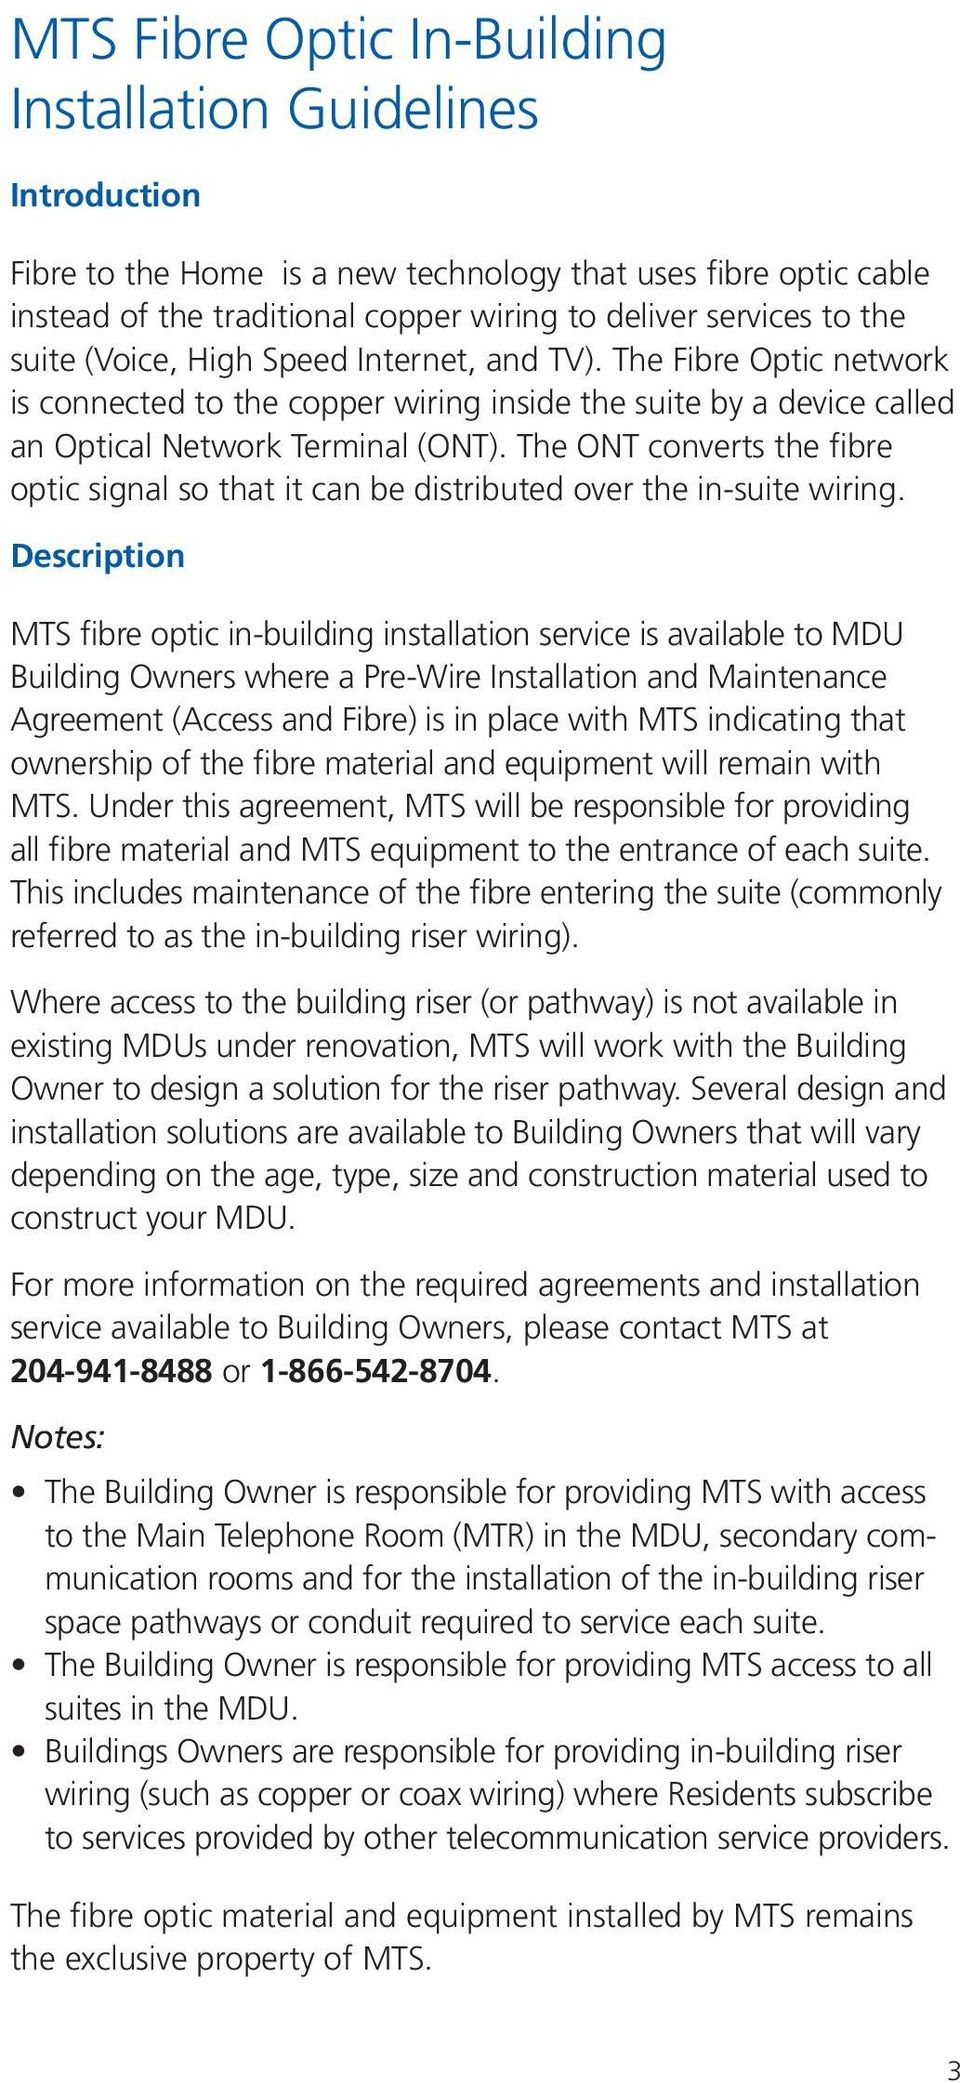 3 cm) depth* SOHO MTS Fibre Optic In-Building Installation Guidelines Introduction Fibre to the Home is a new technology that uses fibre optic cable instead of the traditional copper wiring to